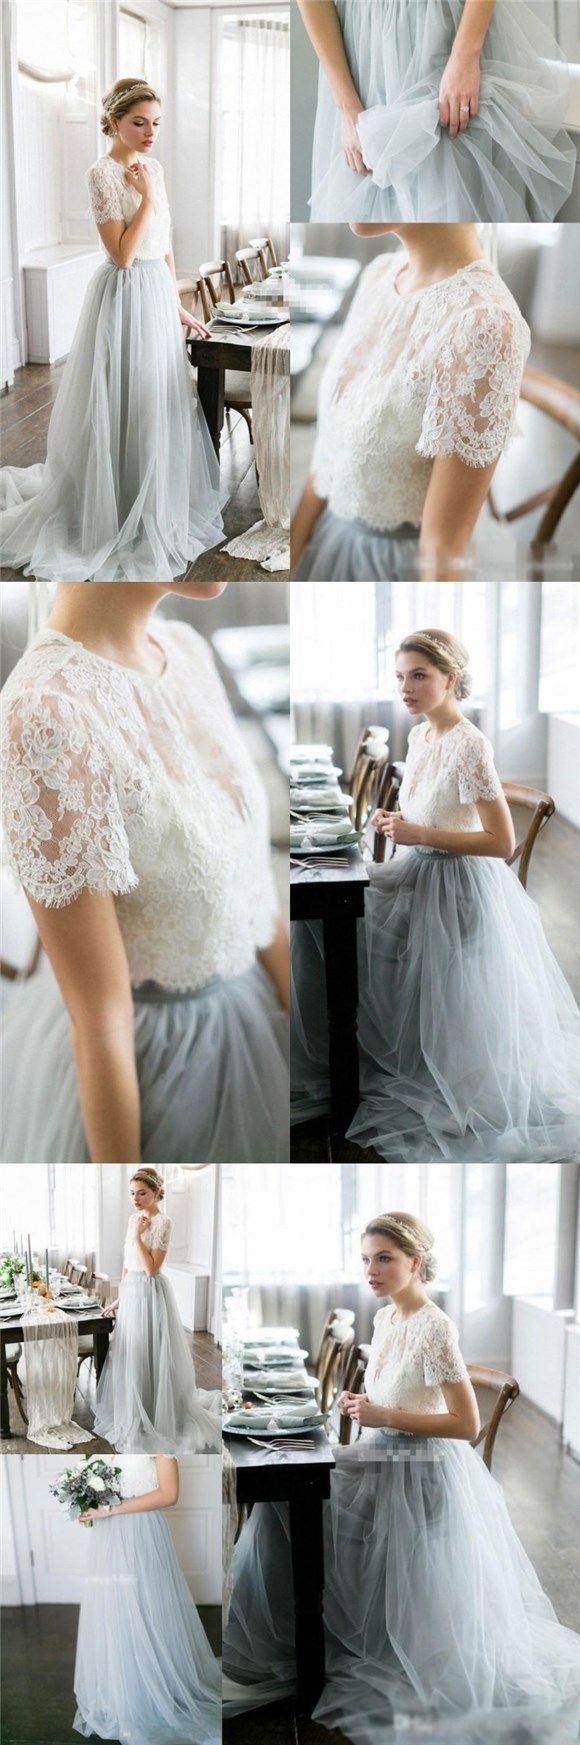 Cheap Custom Lace and Tulle Two Pieces Prom Dresses, Wedding dresses, Pretty Dress, PD0465 Cheap Custom Lace and Tulle Two Pieces Prom Dresses, Wedding dresses, Pretty Dress, PD0465